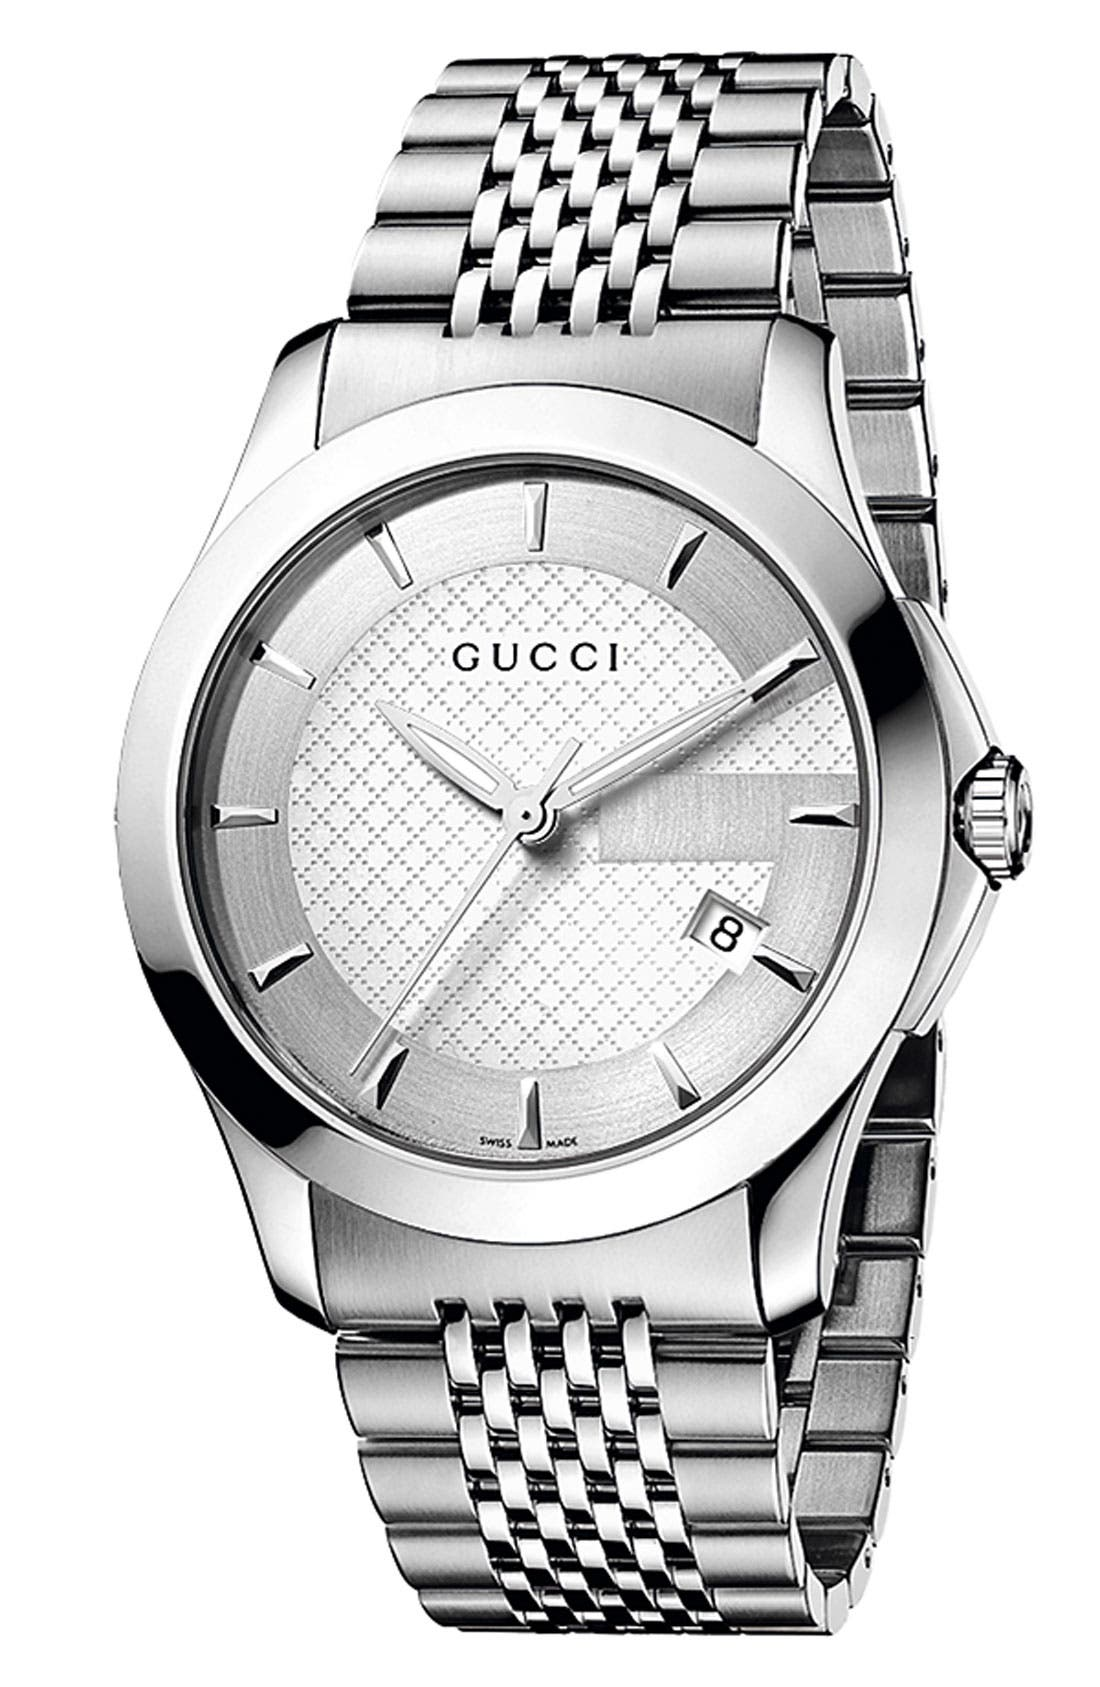 Main Image - Gucci 'G Timeless' Stainless Steel Bracelet Watch, 38mm